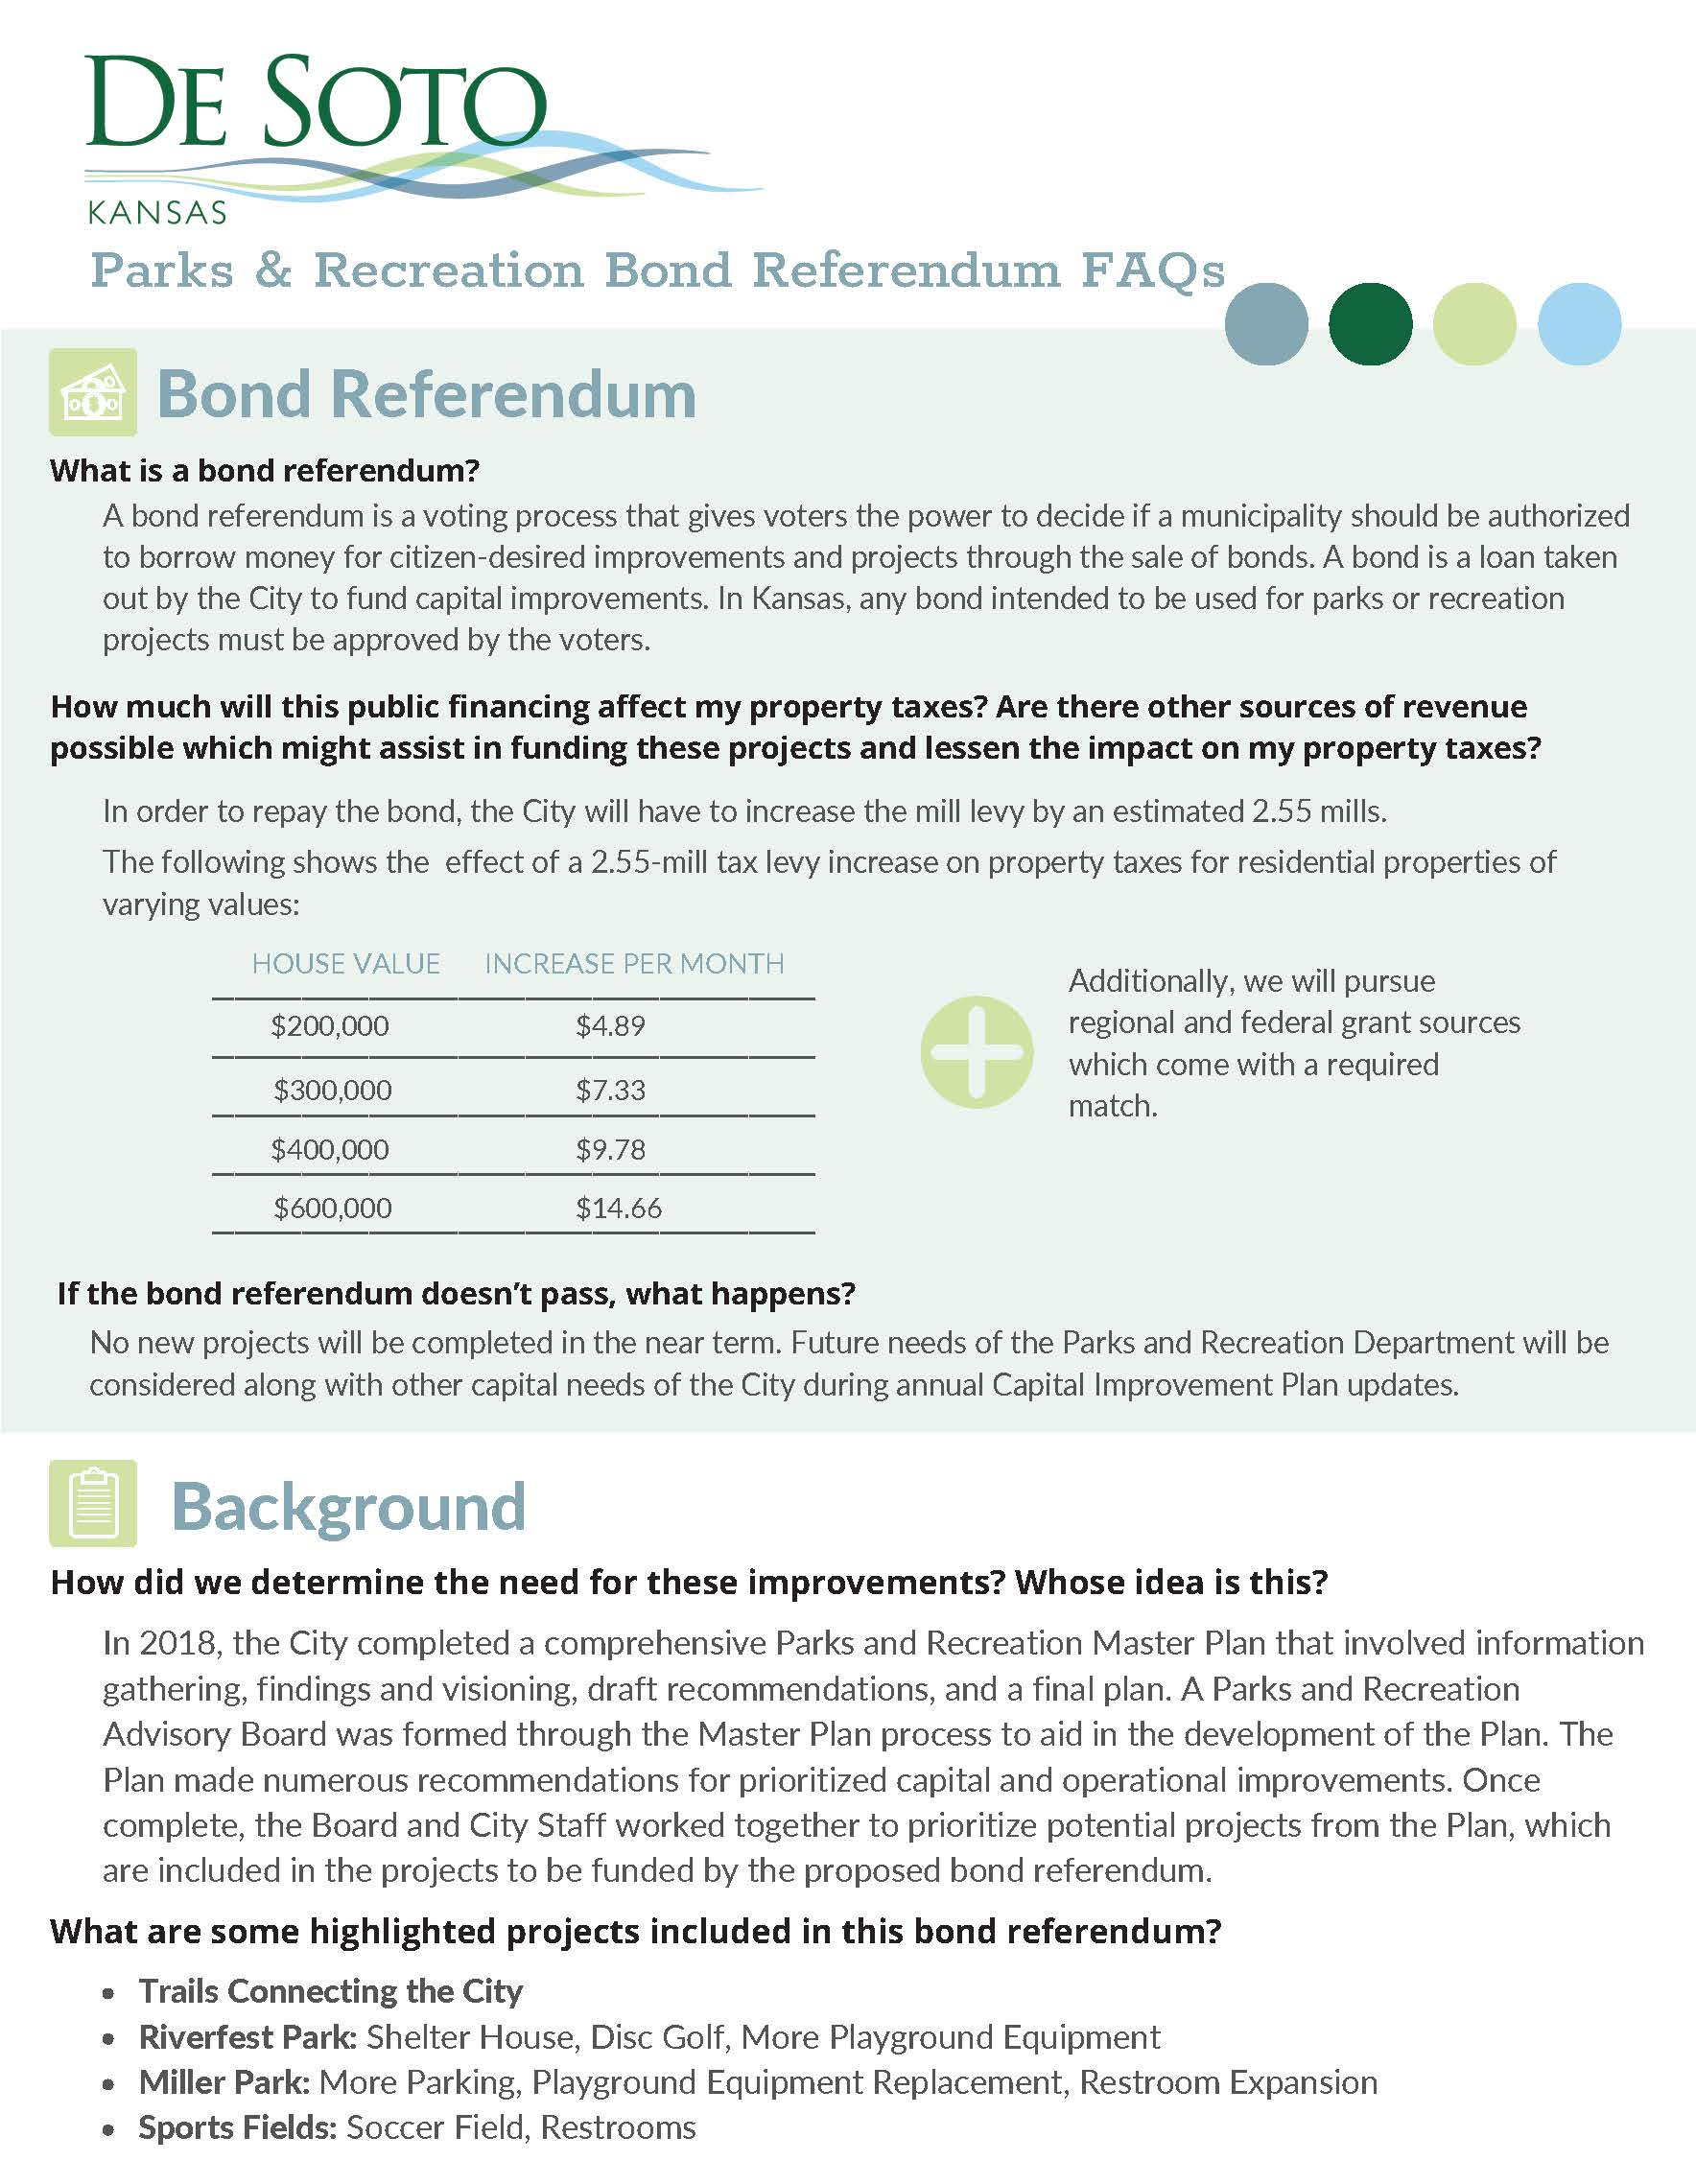 Bond Referendum FAQs1